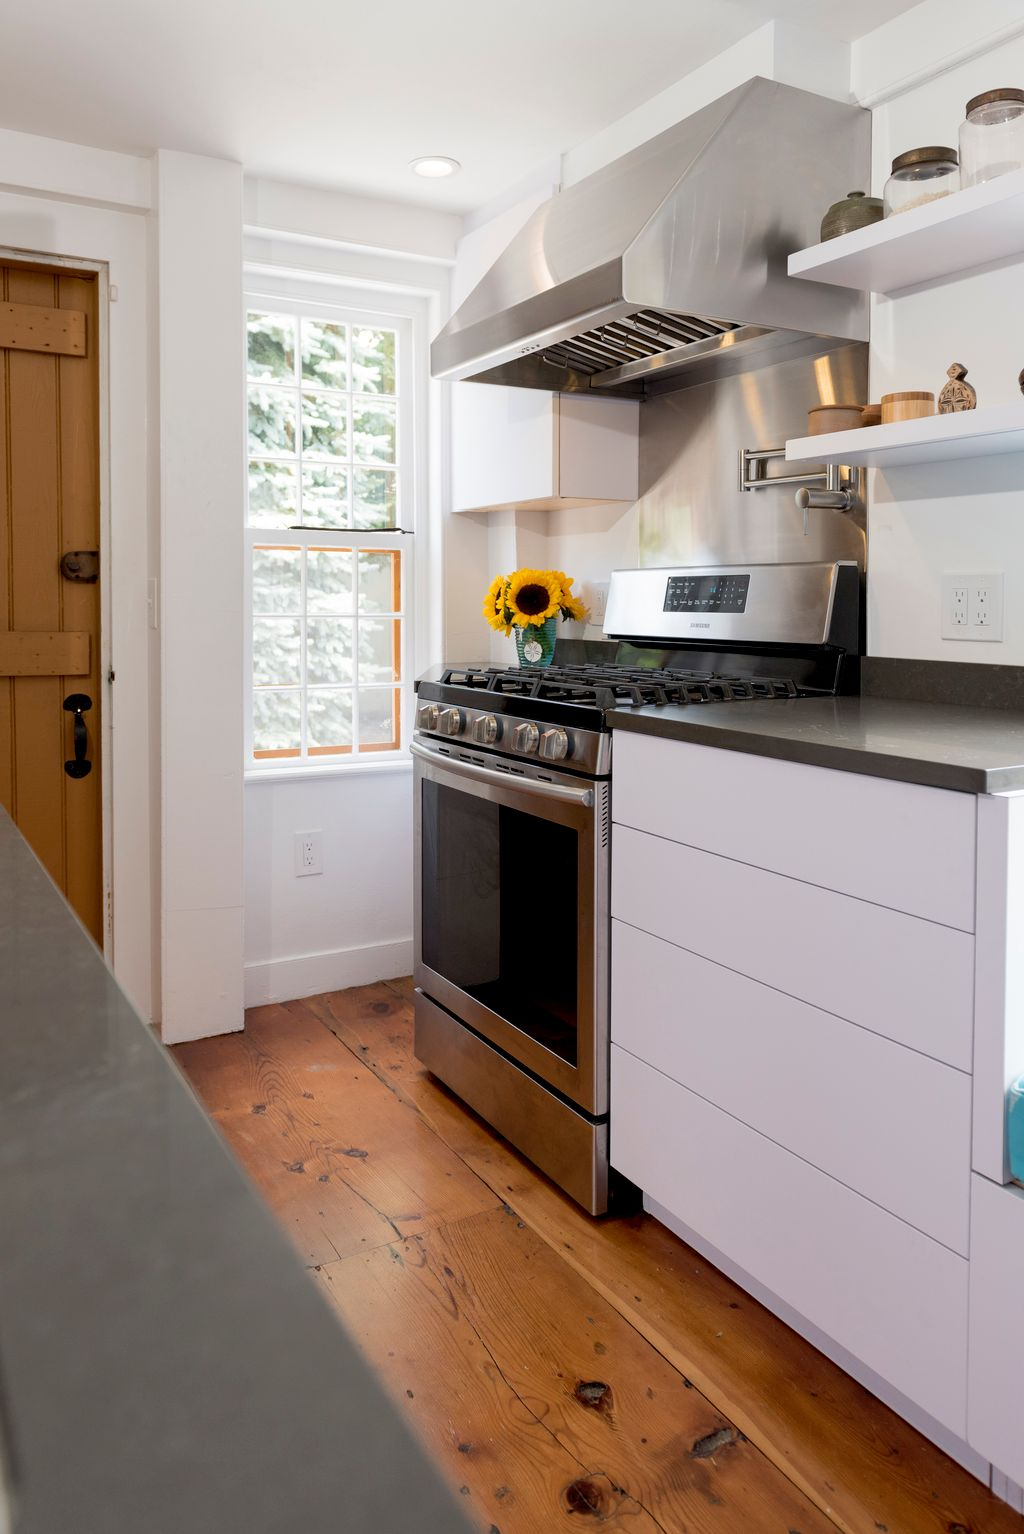 8 by 10 Kitchen, in a  300 Year Old House